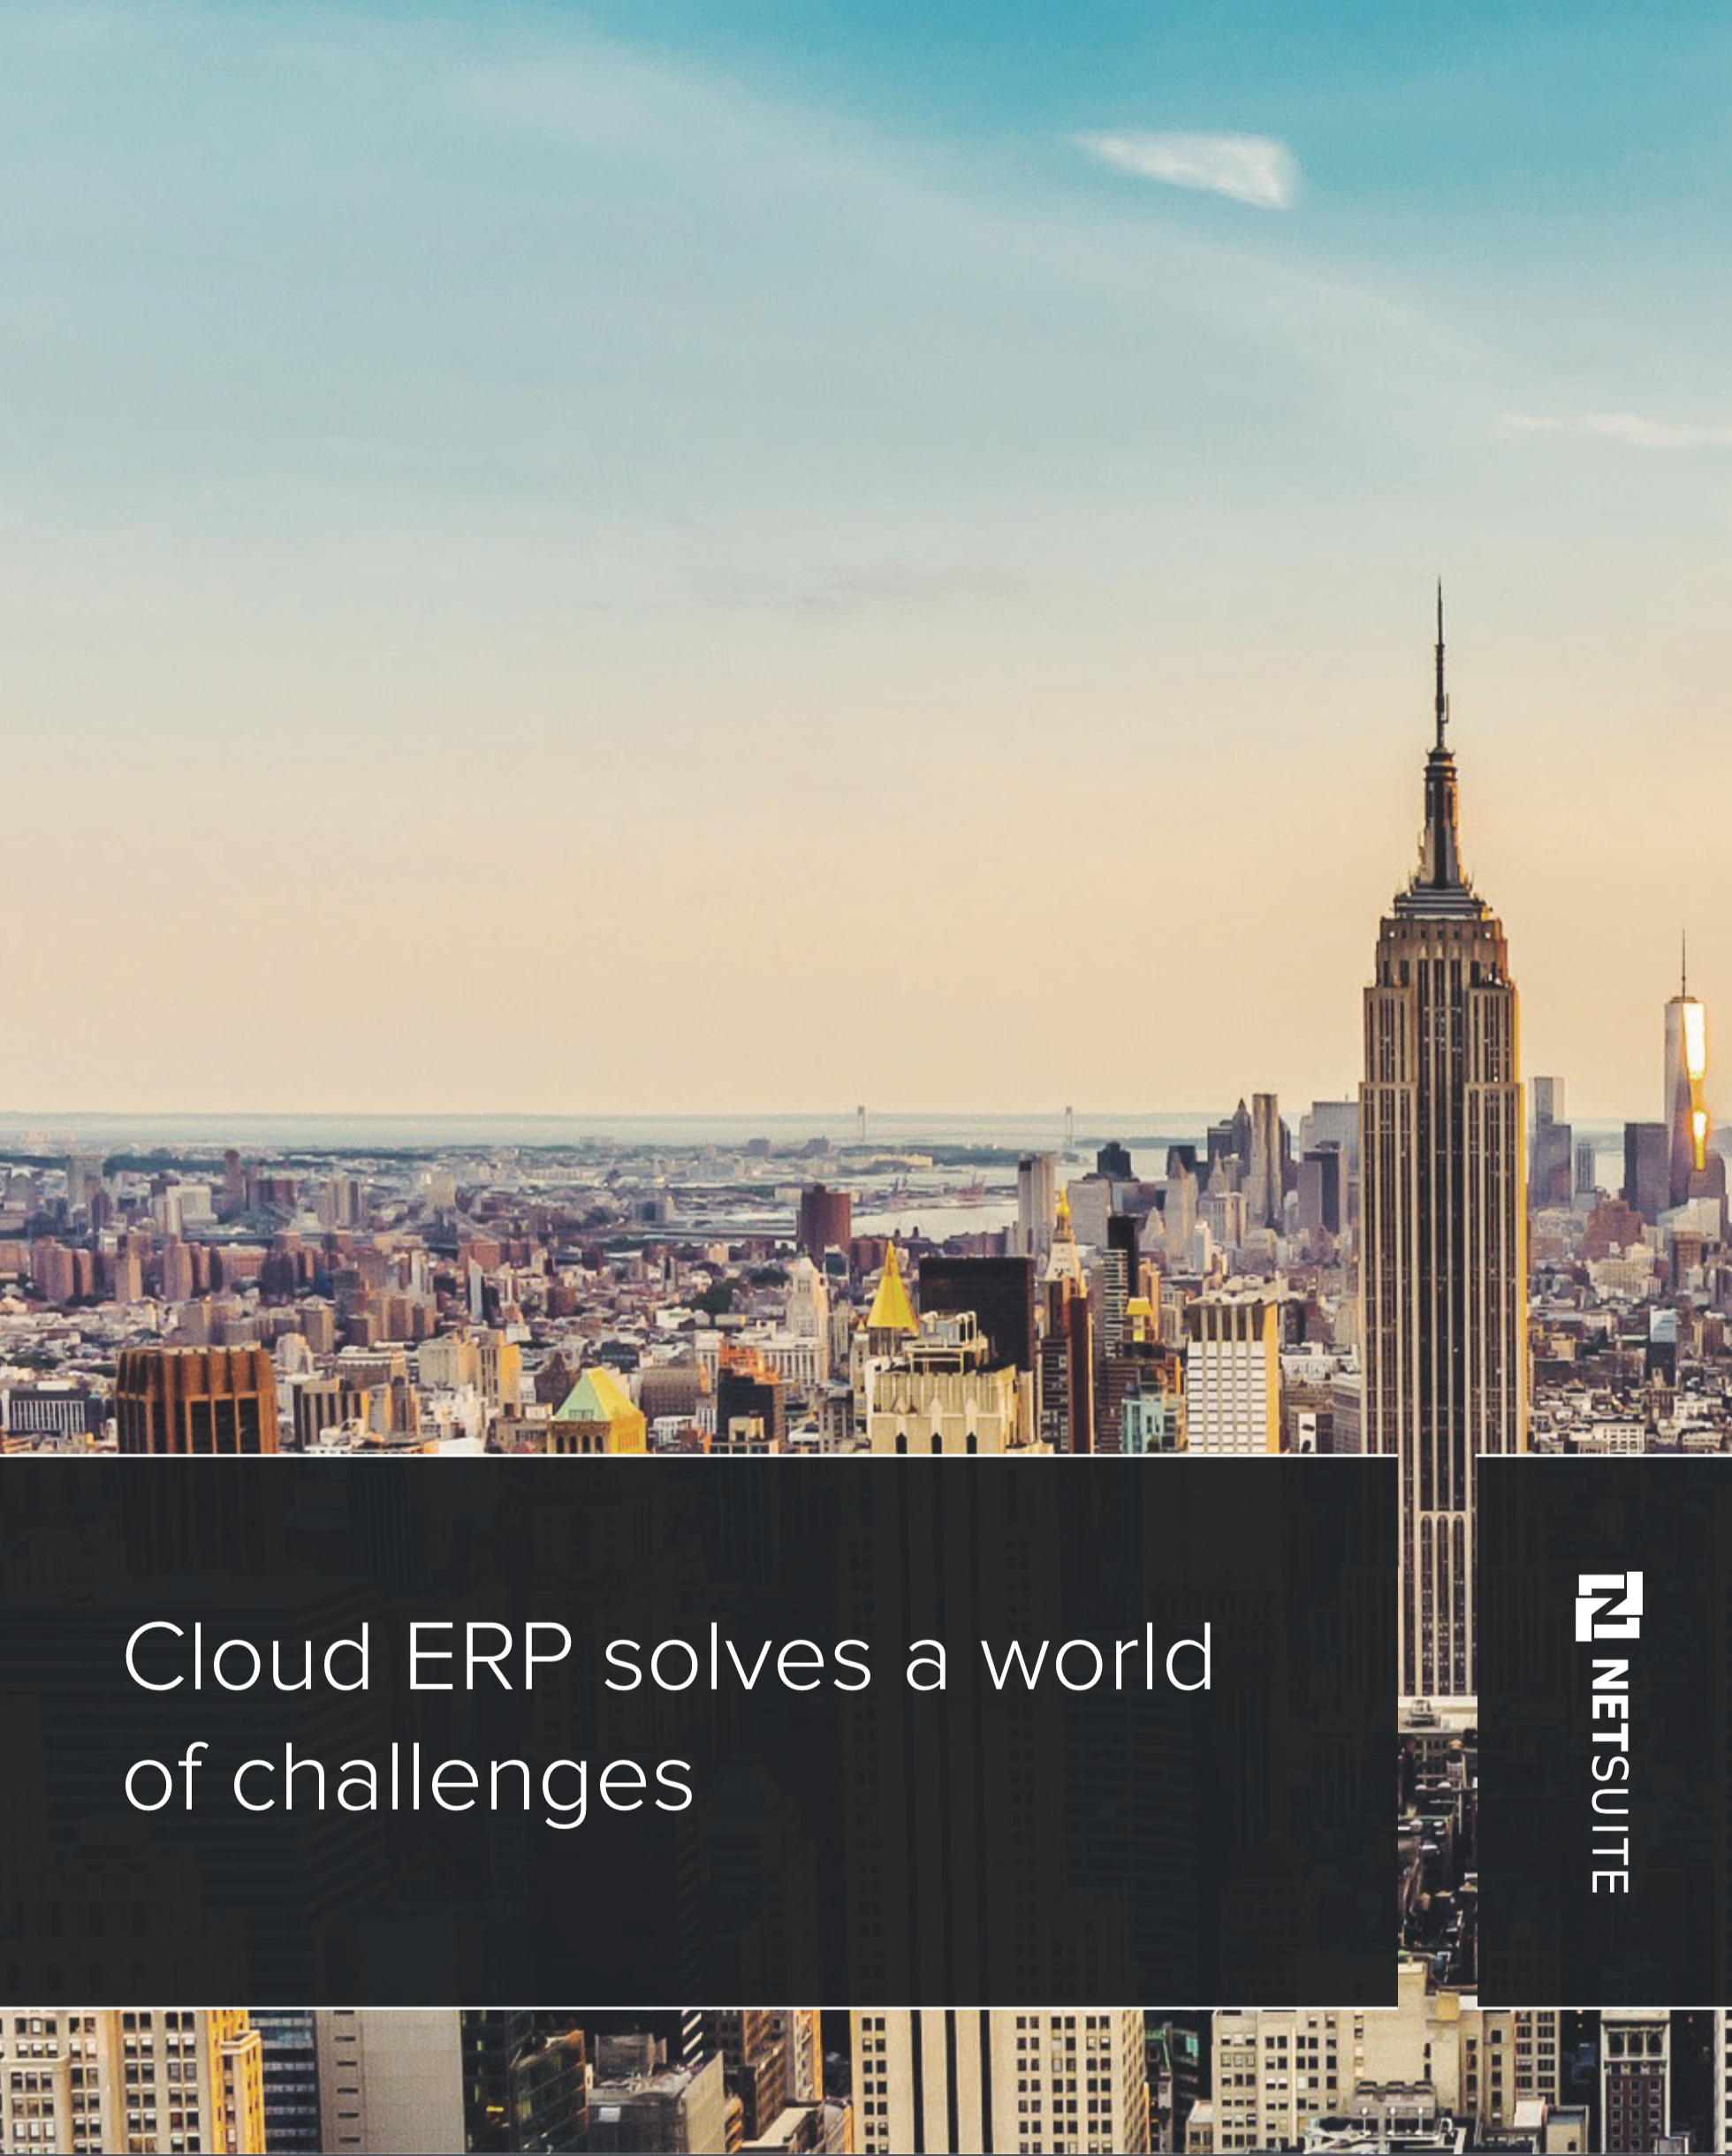 Cloud ERP Solves a World of Challenges